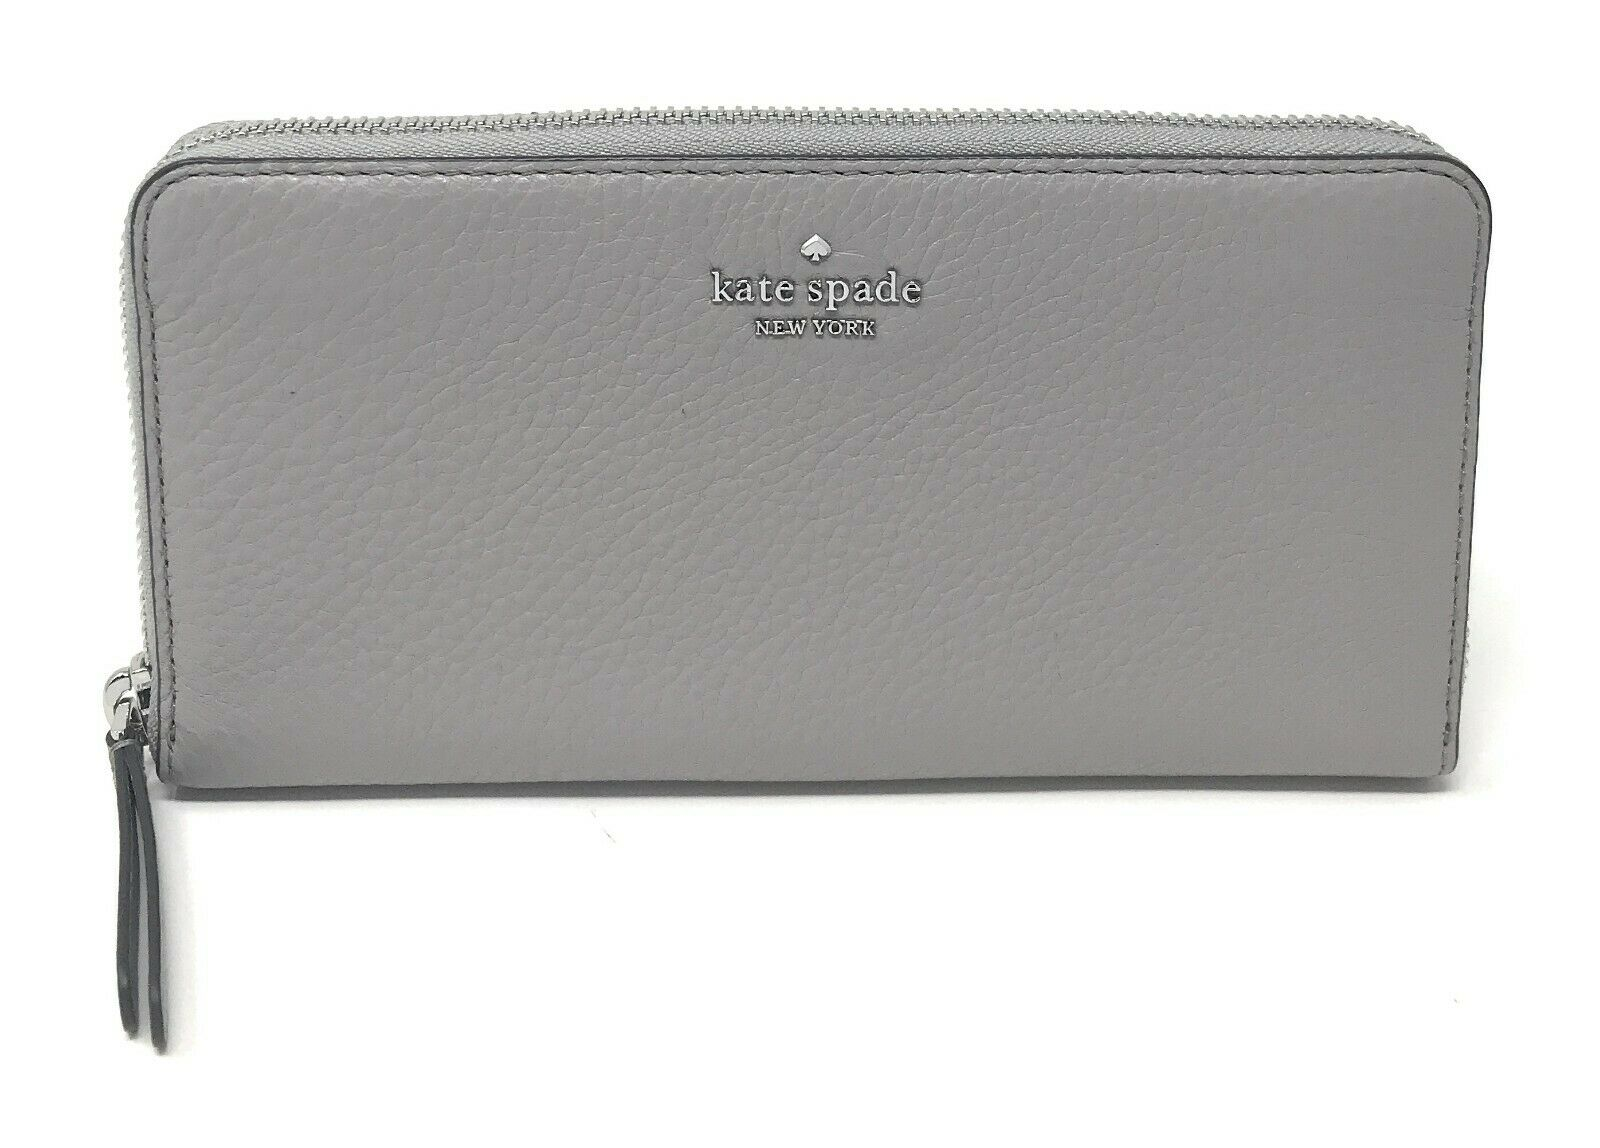 Kate Spade Jackson Street Large Continental Zip Wallet Leather WLRU5833 $189